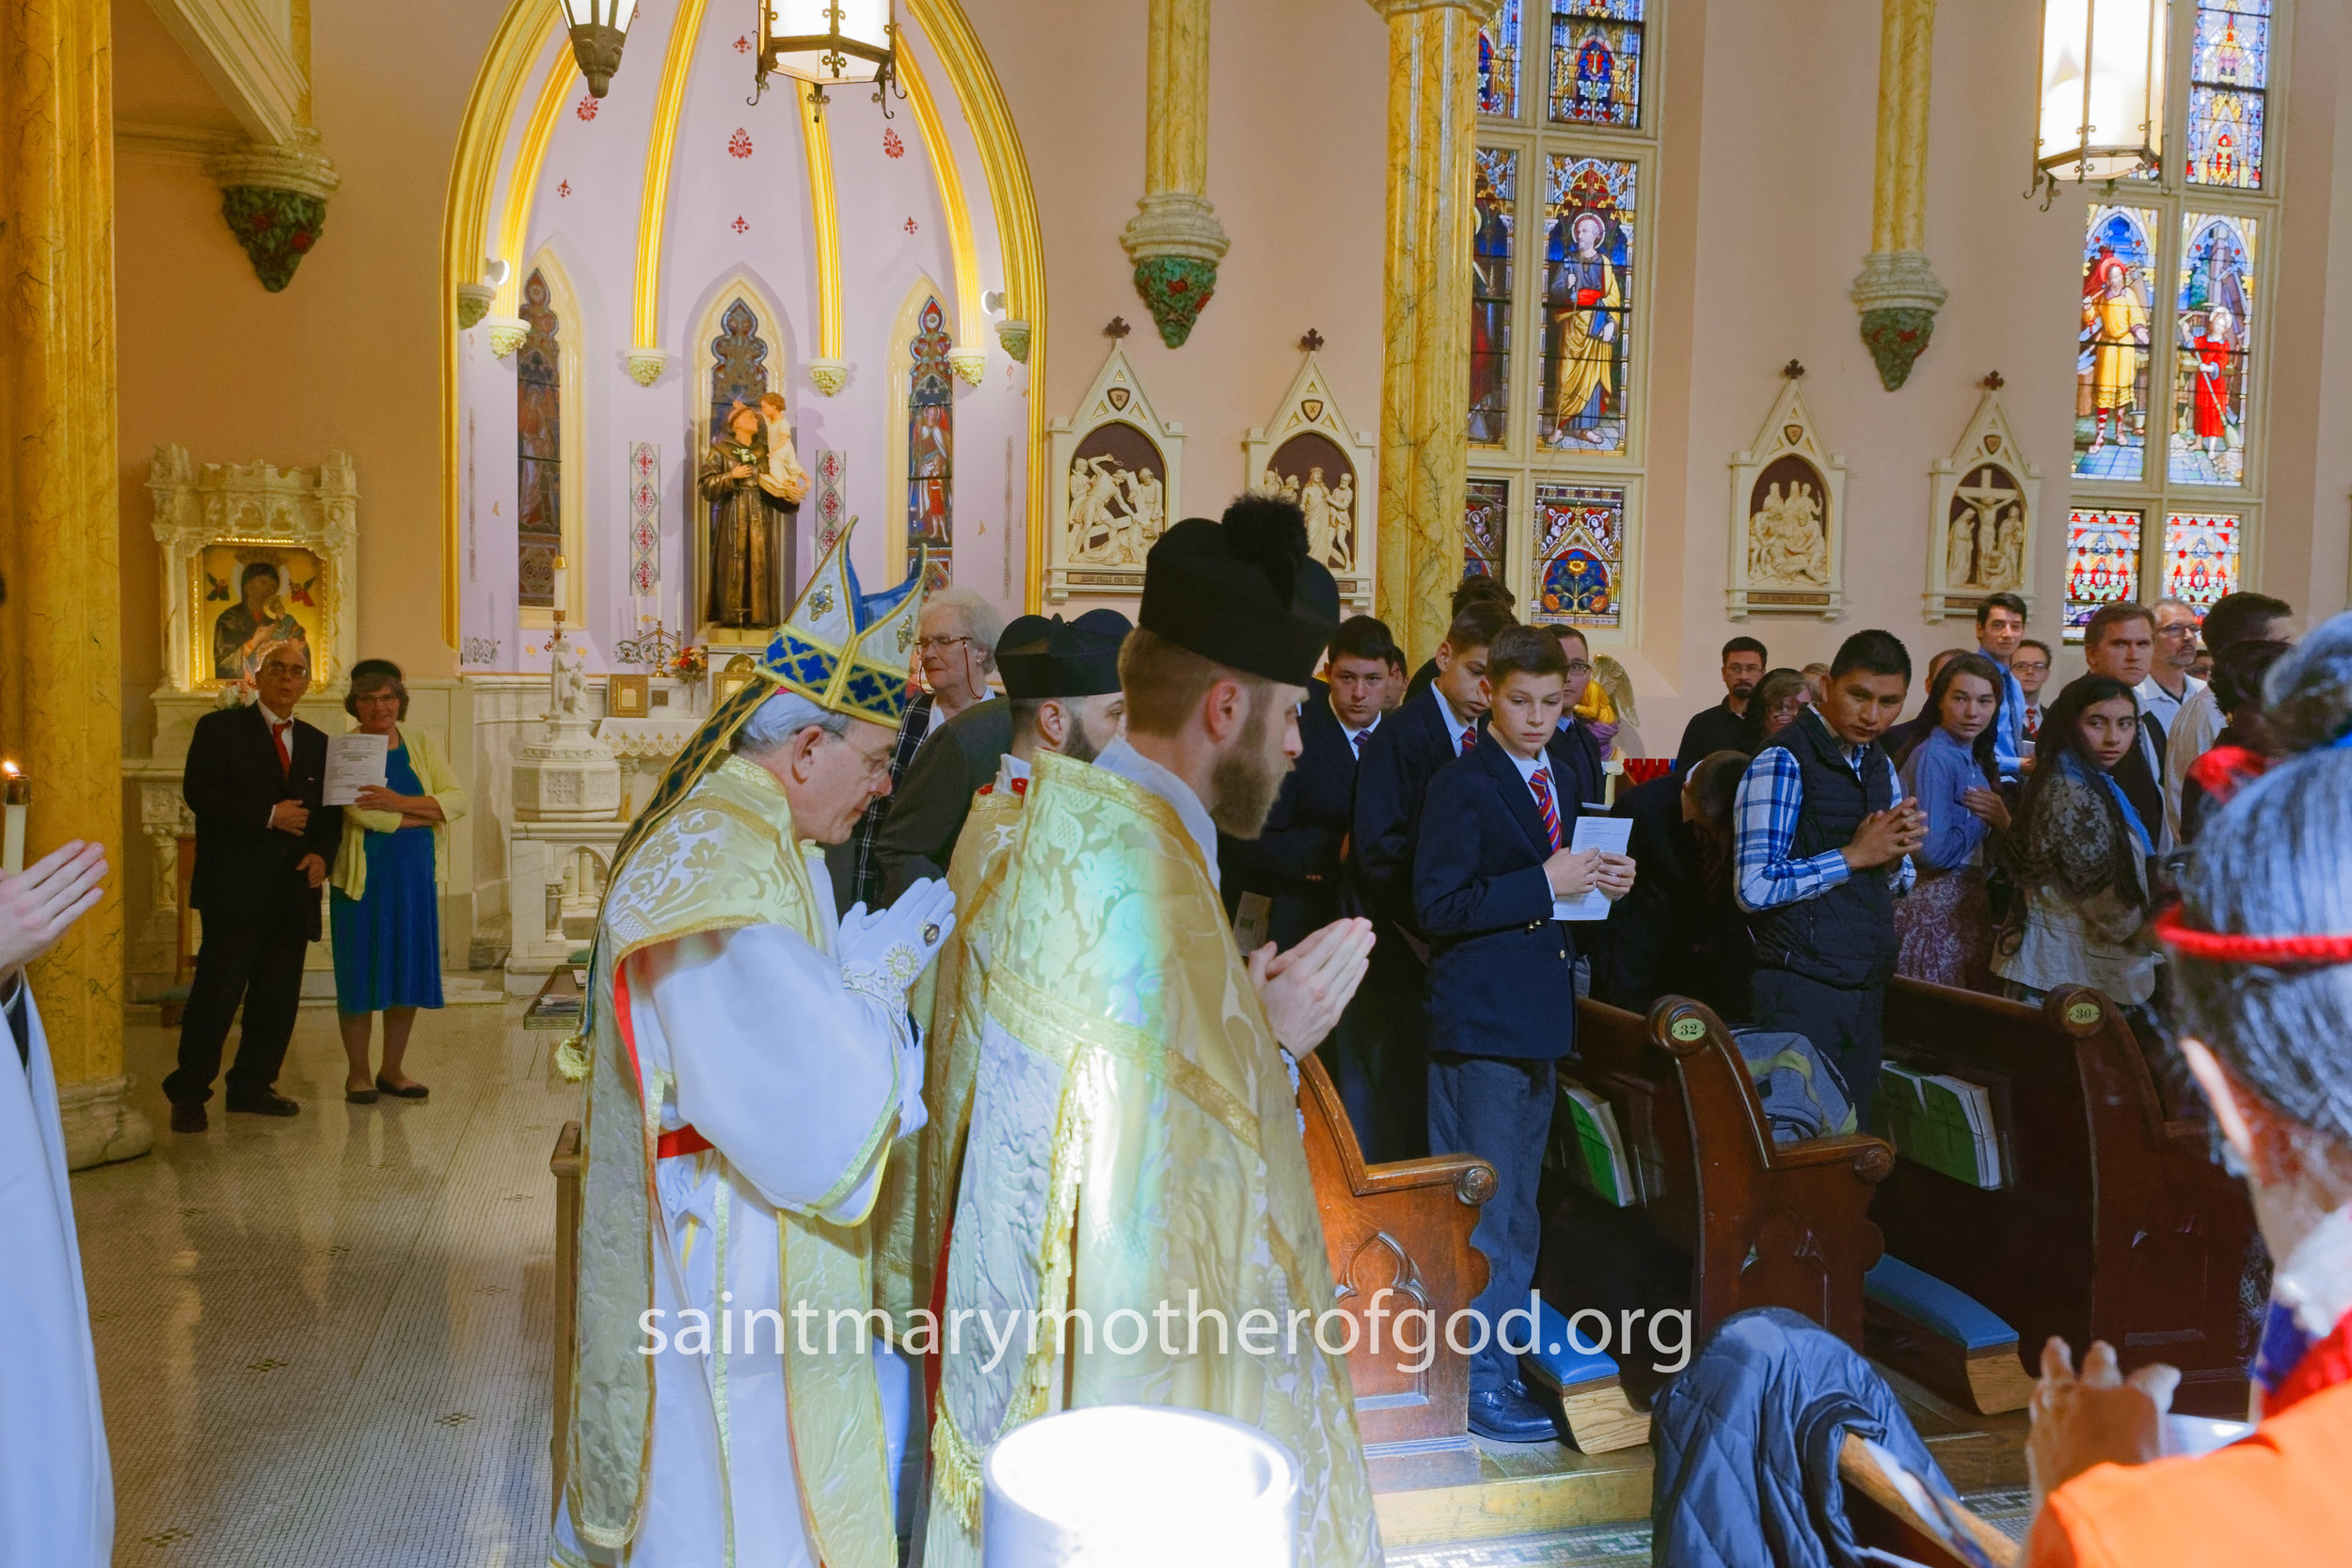 Saint Mary Mother of God Blessed Karl Vitacco Photos-11.jpg